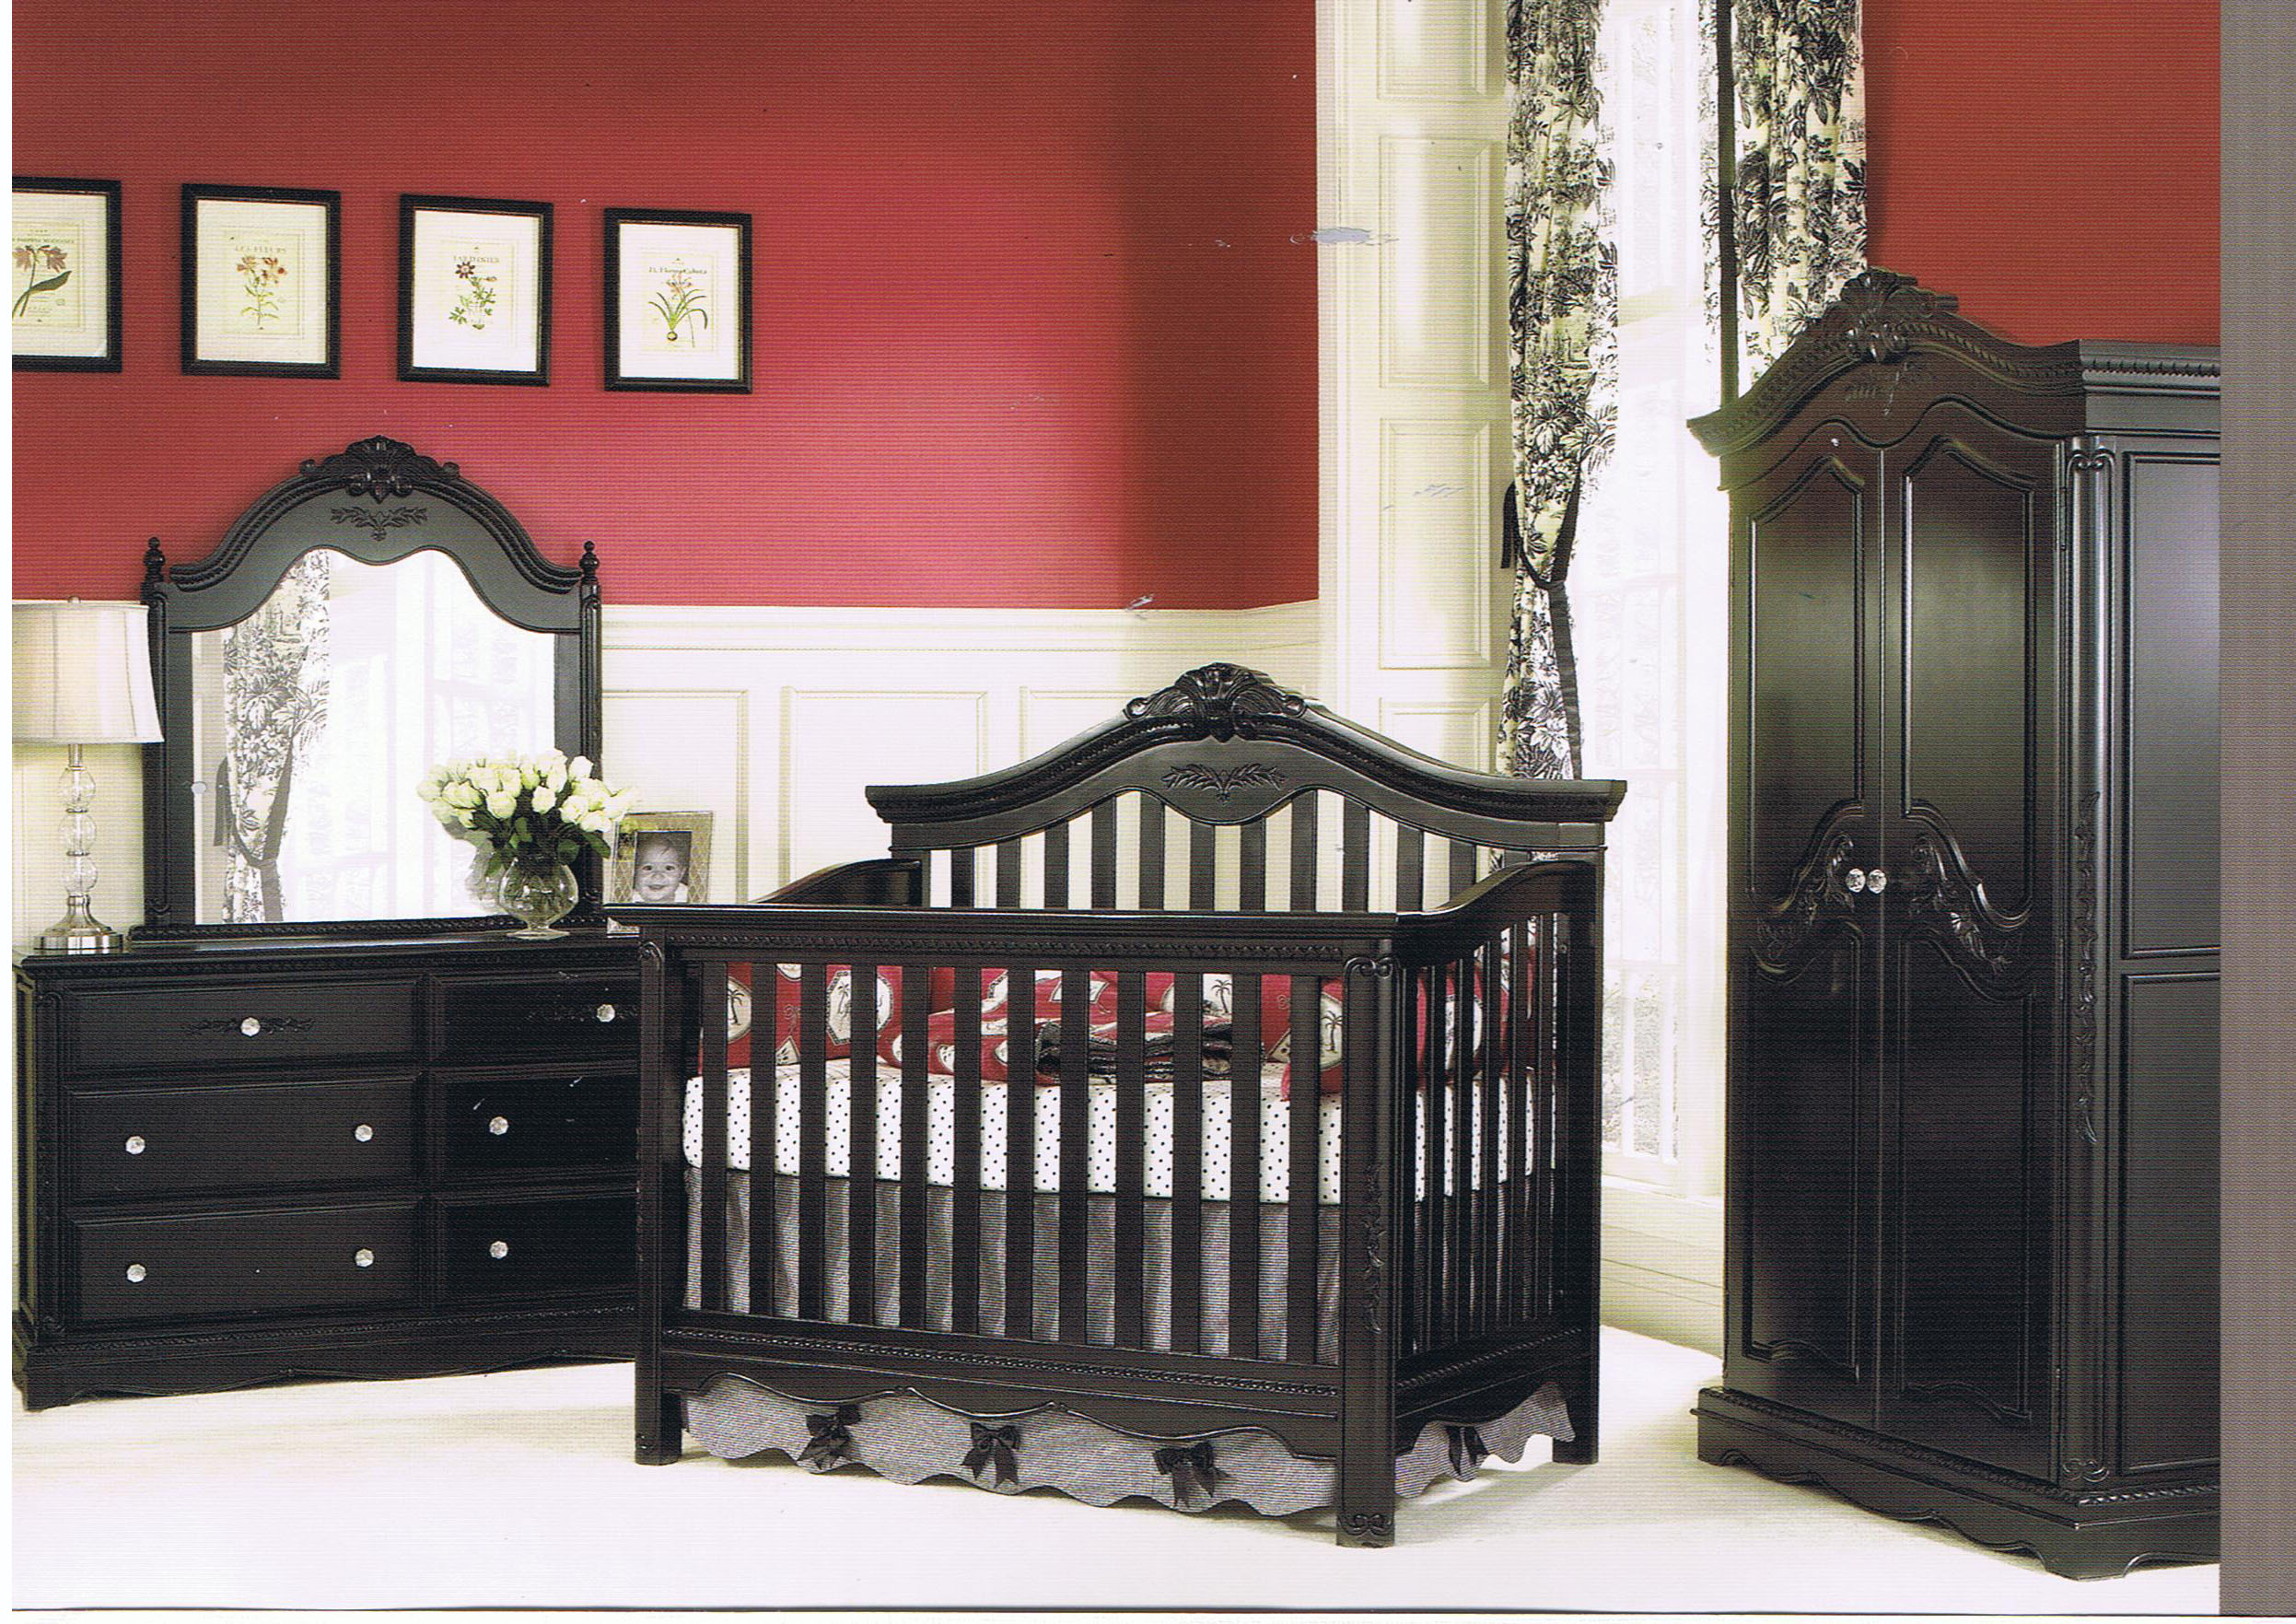 Nursery Furniture-Munire Furniture